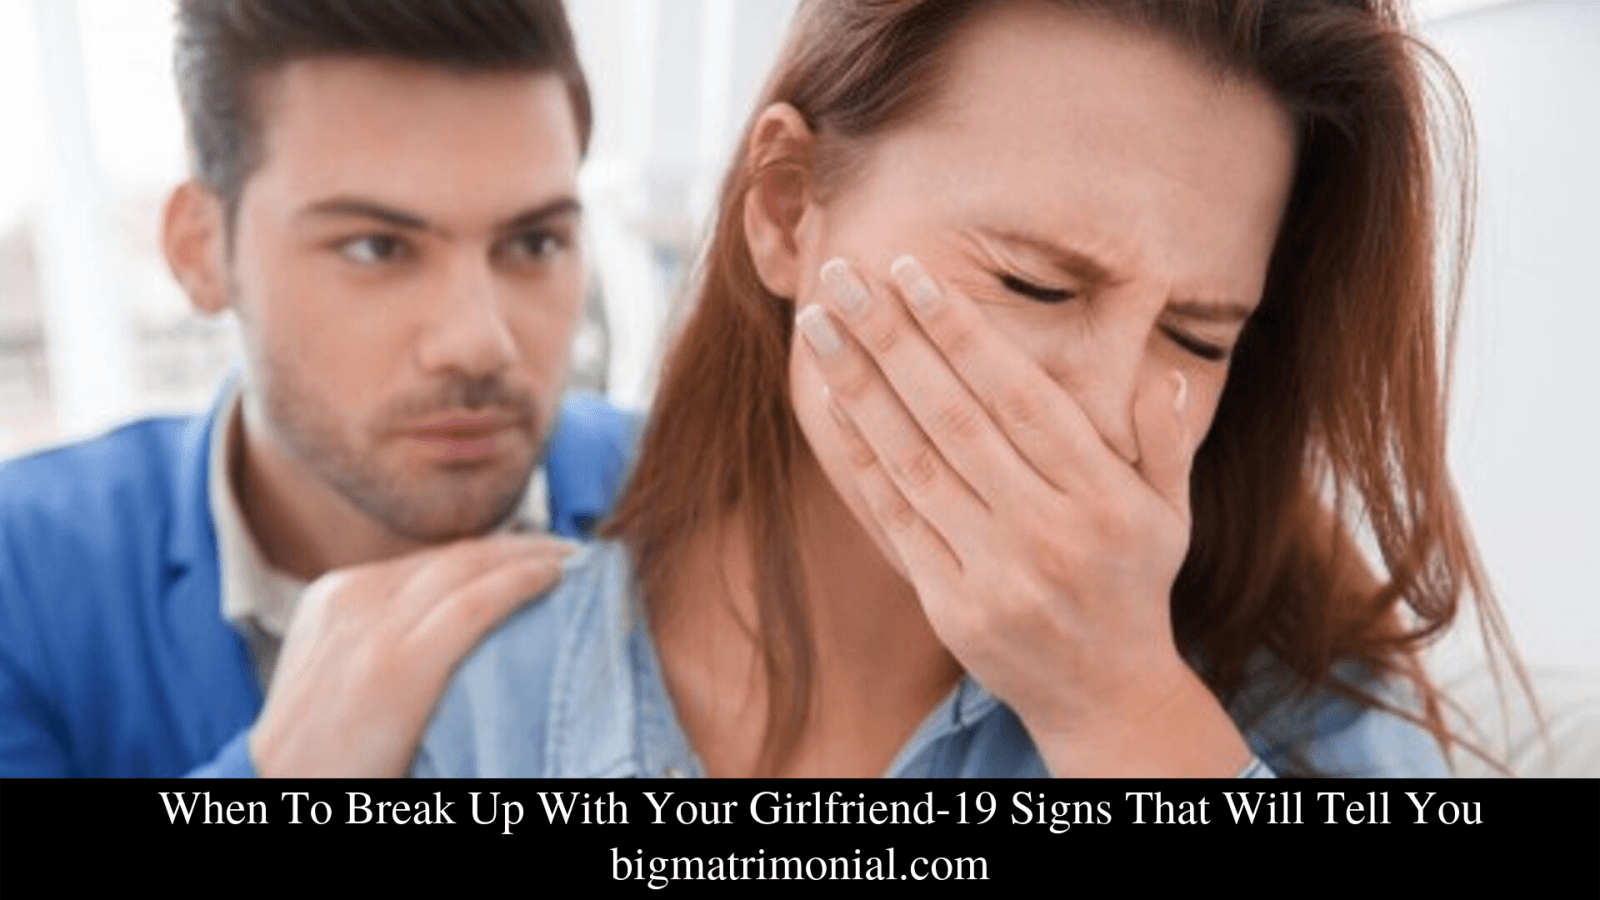 When To Break Up With Your Girlfriend-19 Signs That Will Tell You